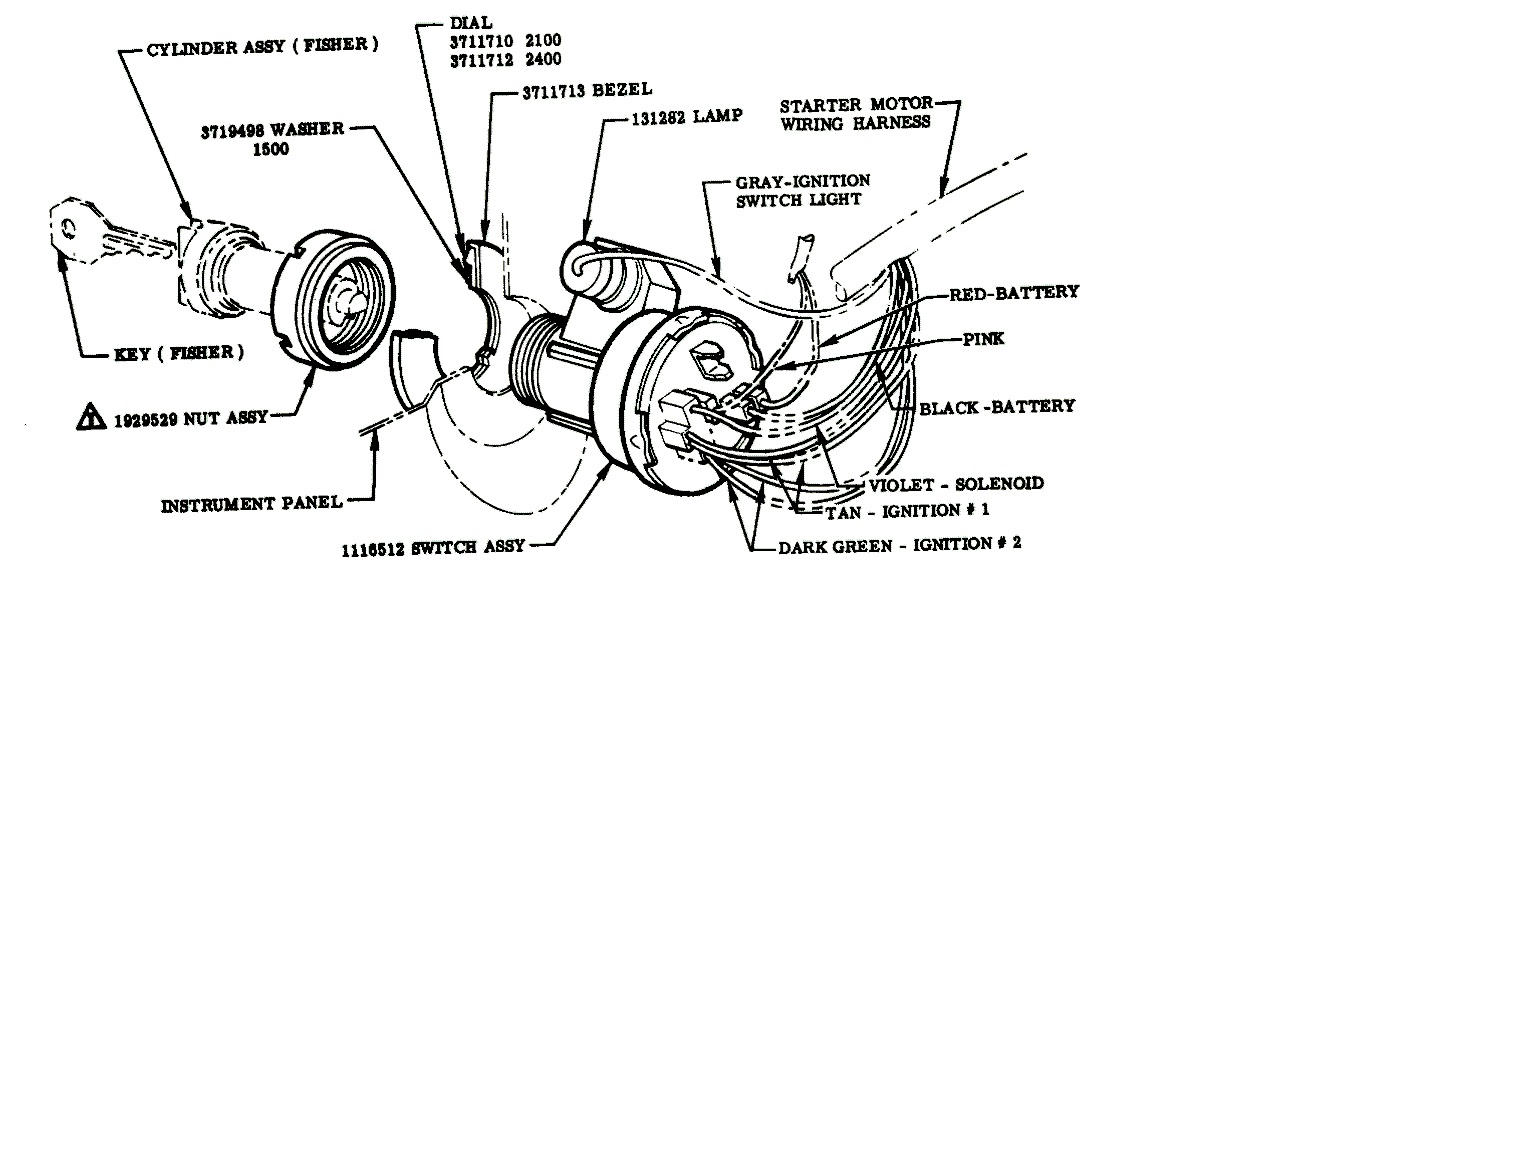 ford hei distributor wiring diagram ford ignition coil diagram hei conversion wiring diagram at n-0.co